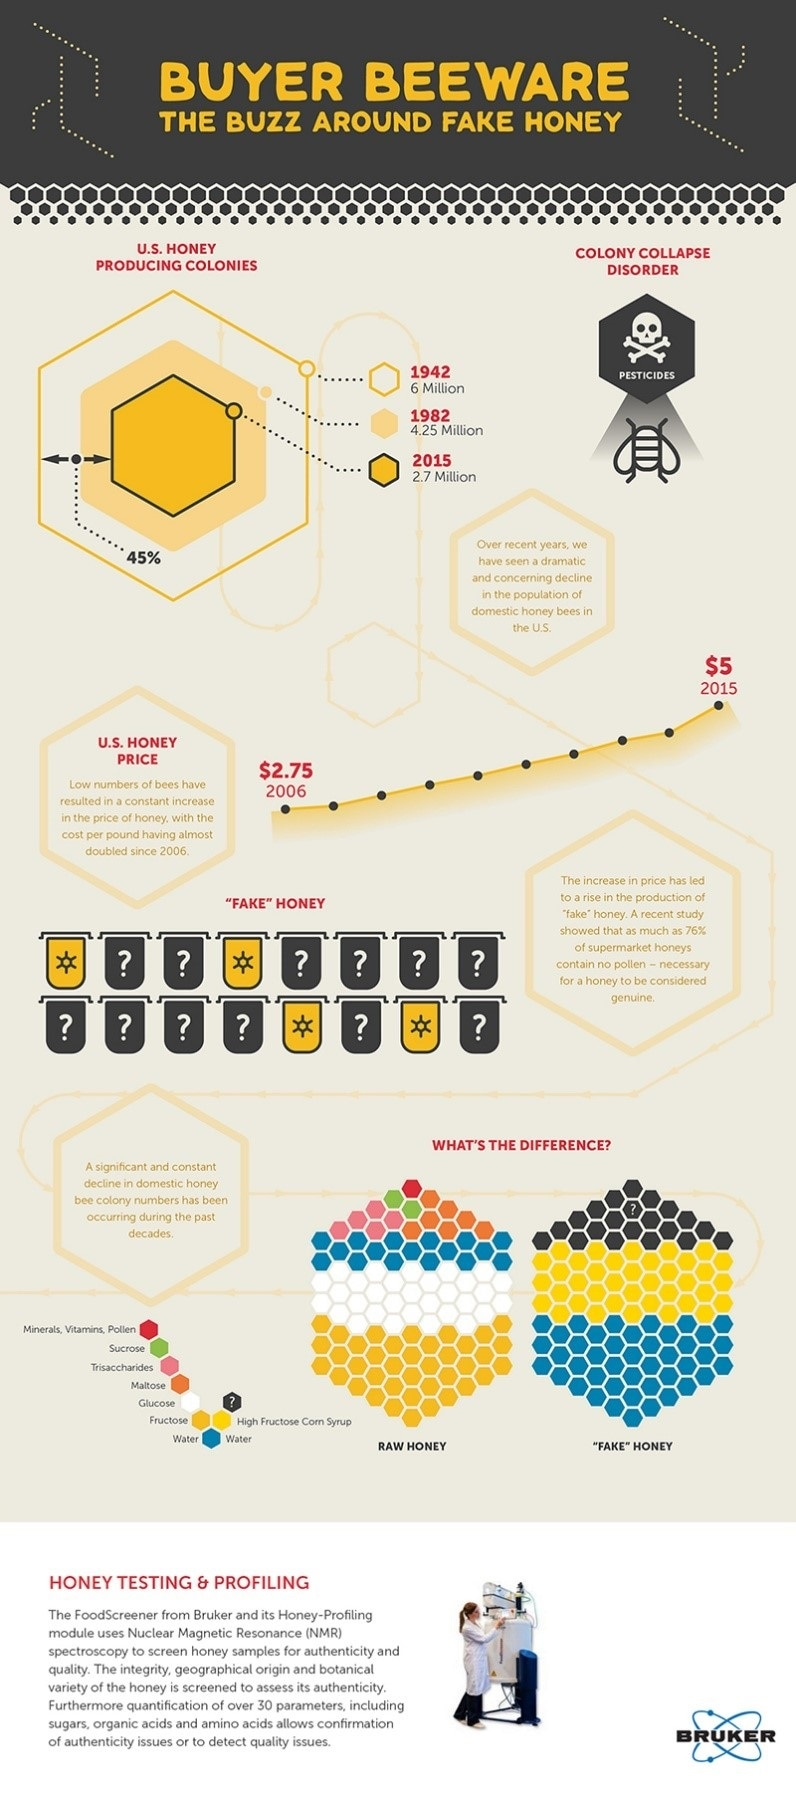 Bruker NMR Honey-Profiling infographic by AZoNetwork